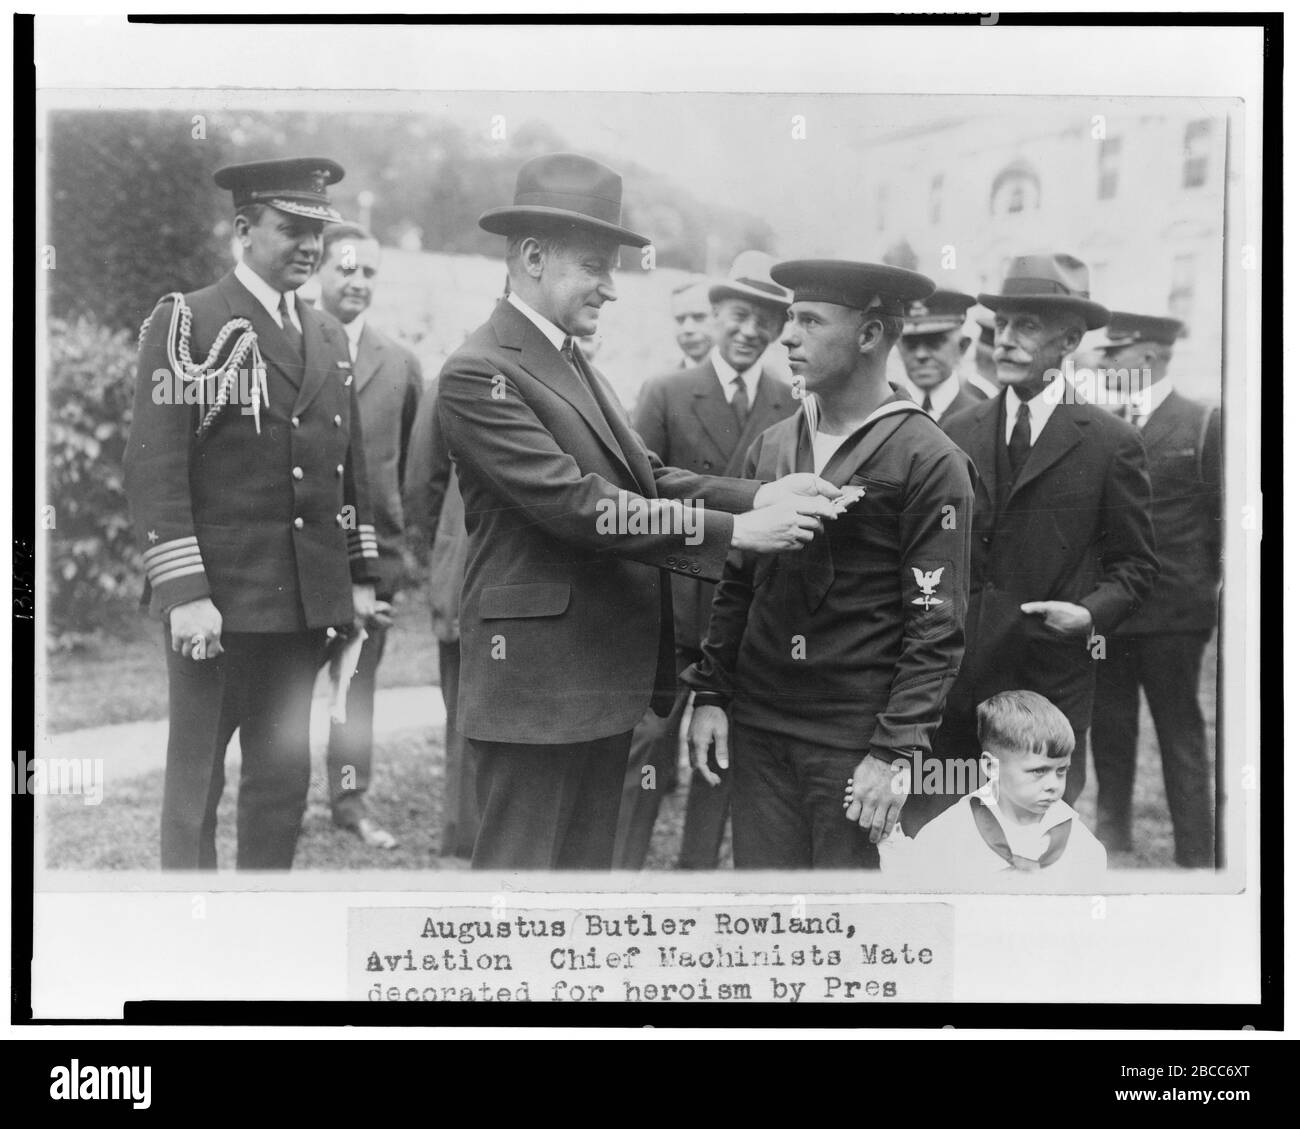 """""""English: Title: Augustus Butler Rowland, Aviation Chief Machinists Mate, decorated for heroism by Pres. Coolidge Abstract/medium: 1 photographic print.; 1925; Library of Congress  Catalog: http://lccn.loc.gov/2002712396 Image download: http://cdn.loc.gov/service/pnp/cph/3c30000/3c31000/3c31500/3c31578v.jpg Original url: https://www.loc.gov/pictures/item/2002712396/; National Photo Company Collection; """" Stock Photo"""